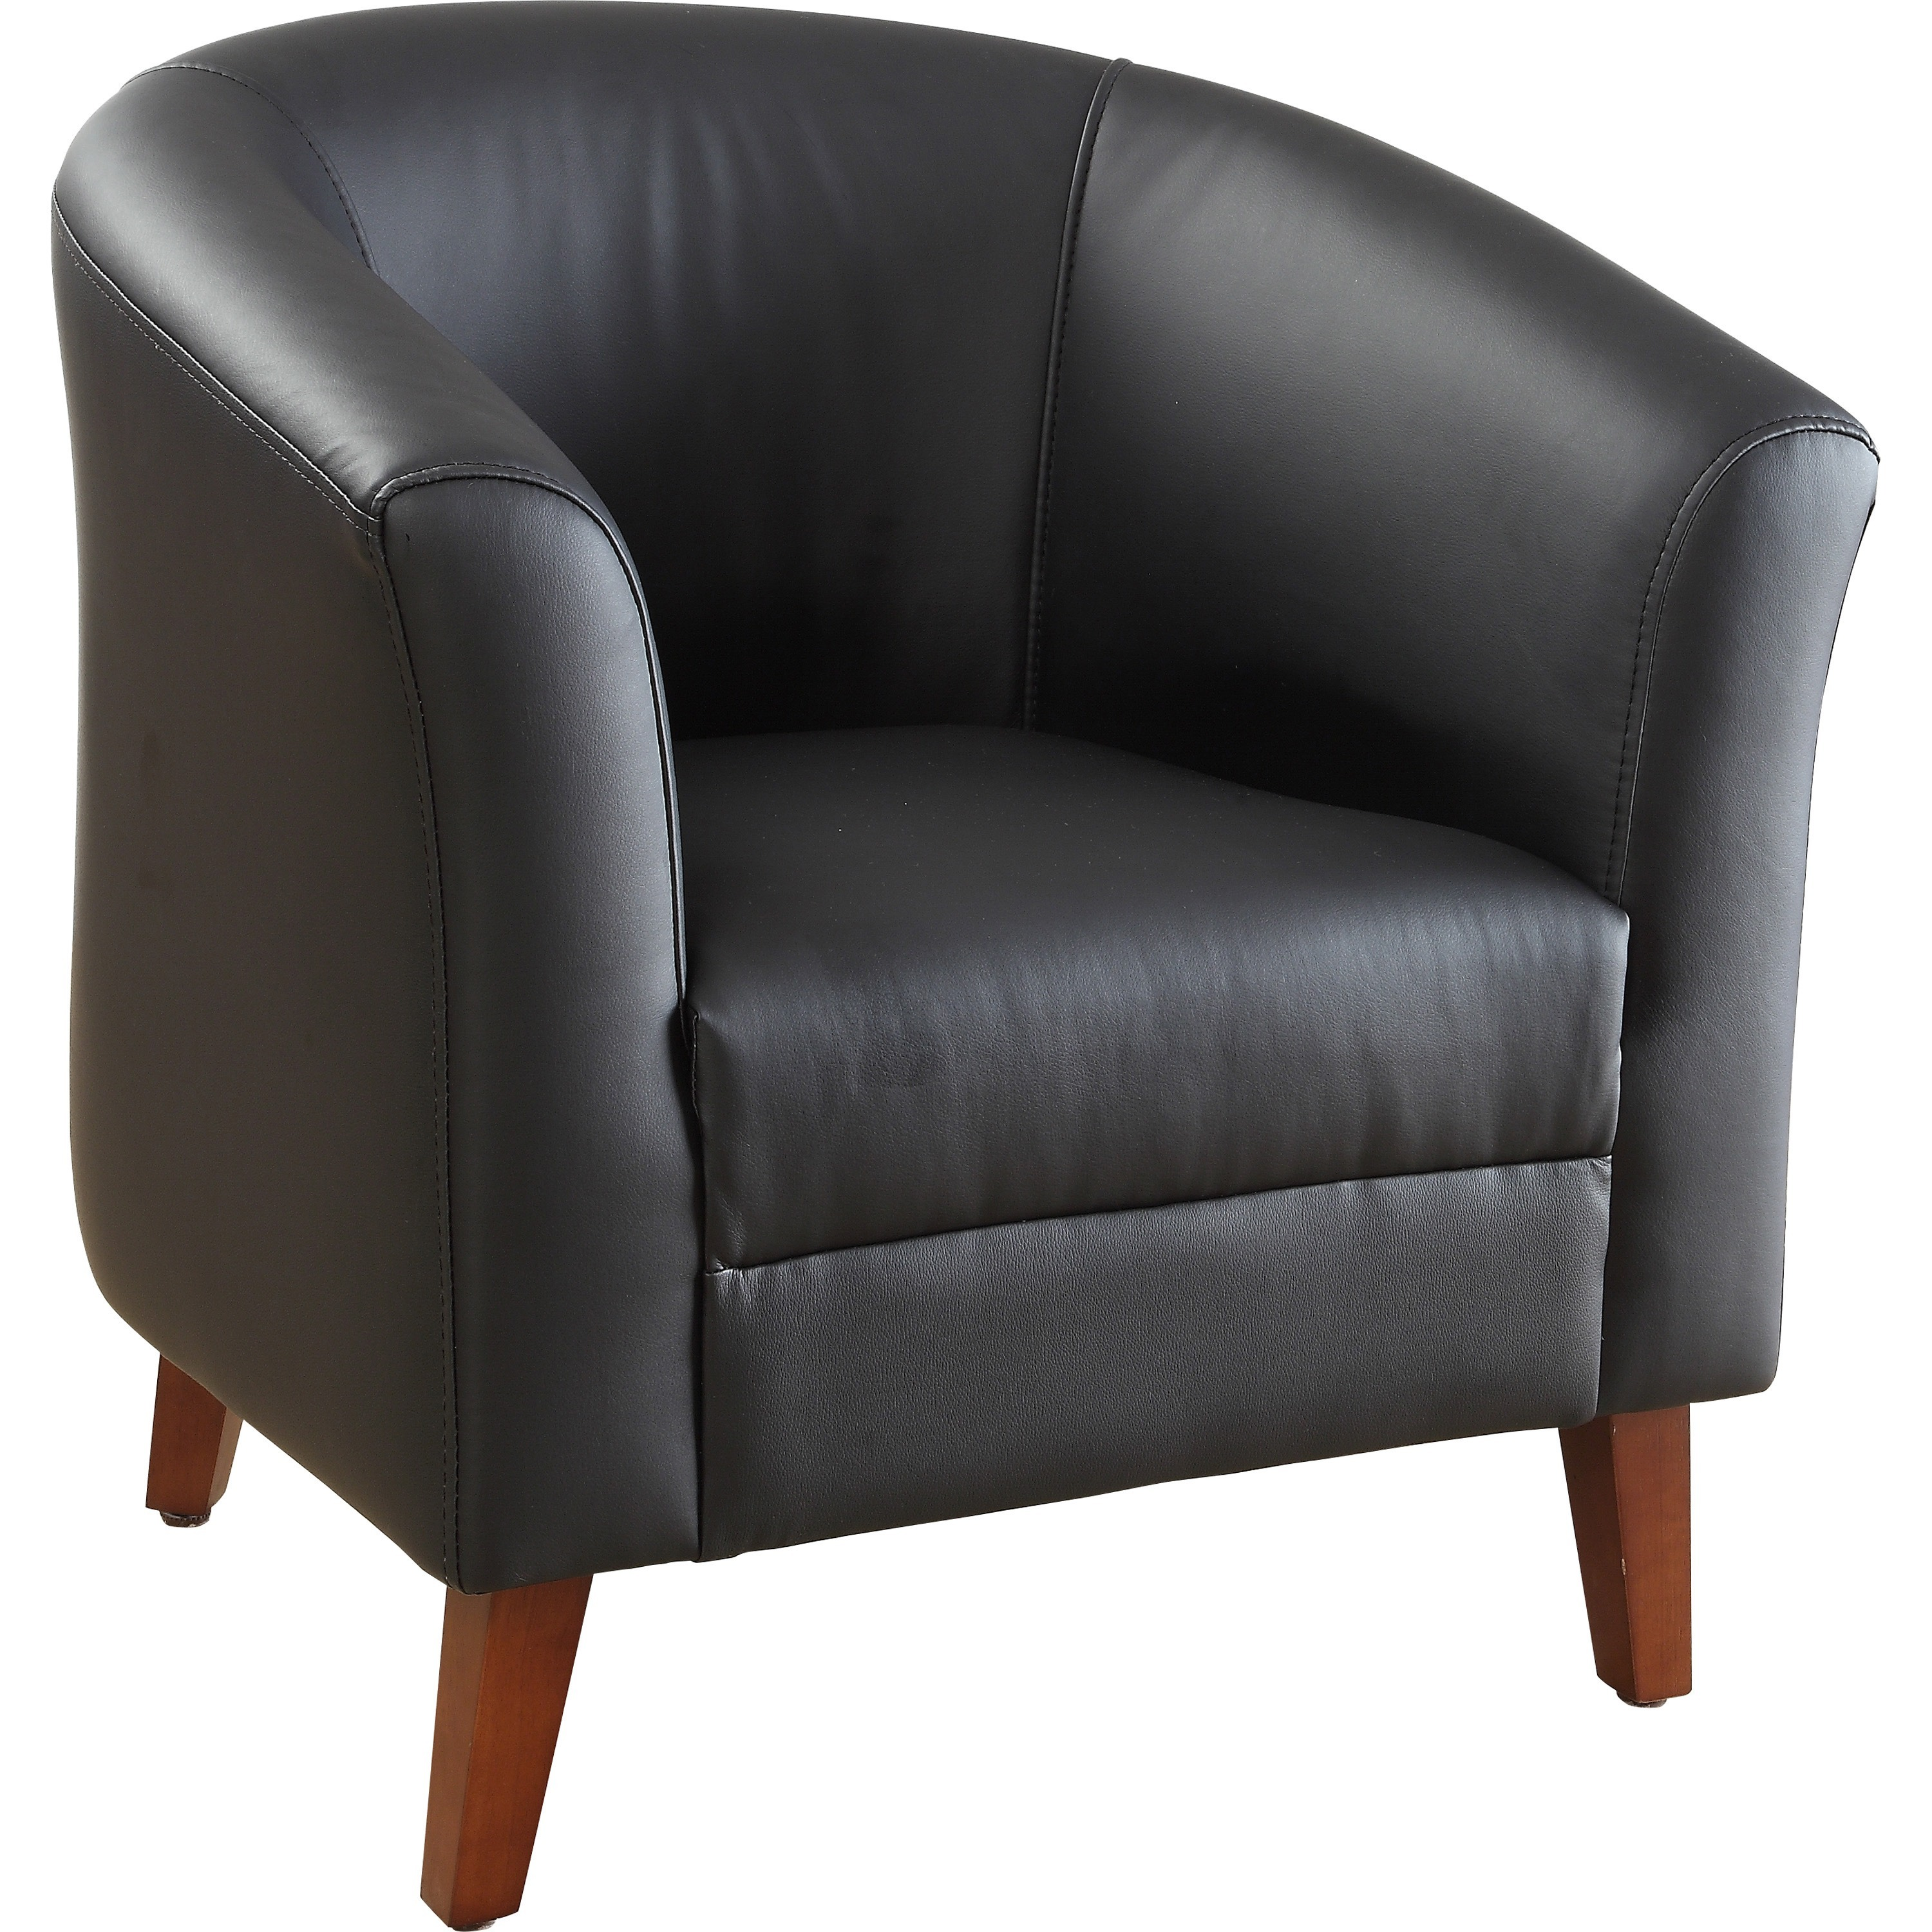 Lorell Leather Club Chair Four Legged Base Black Bonded 31 5 Width X 28 8 Depth 30 Height